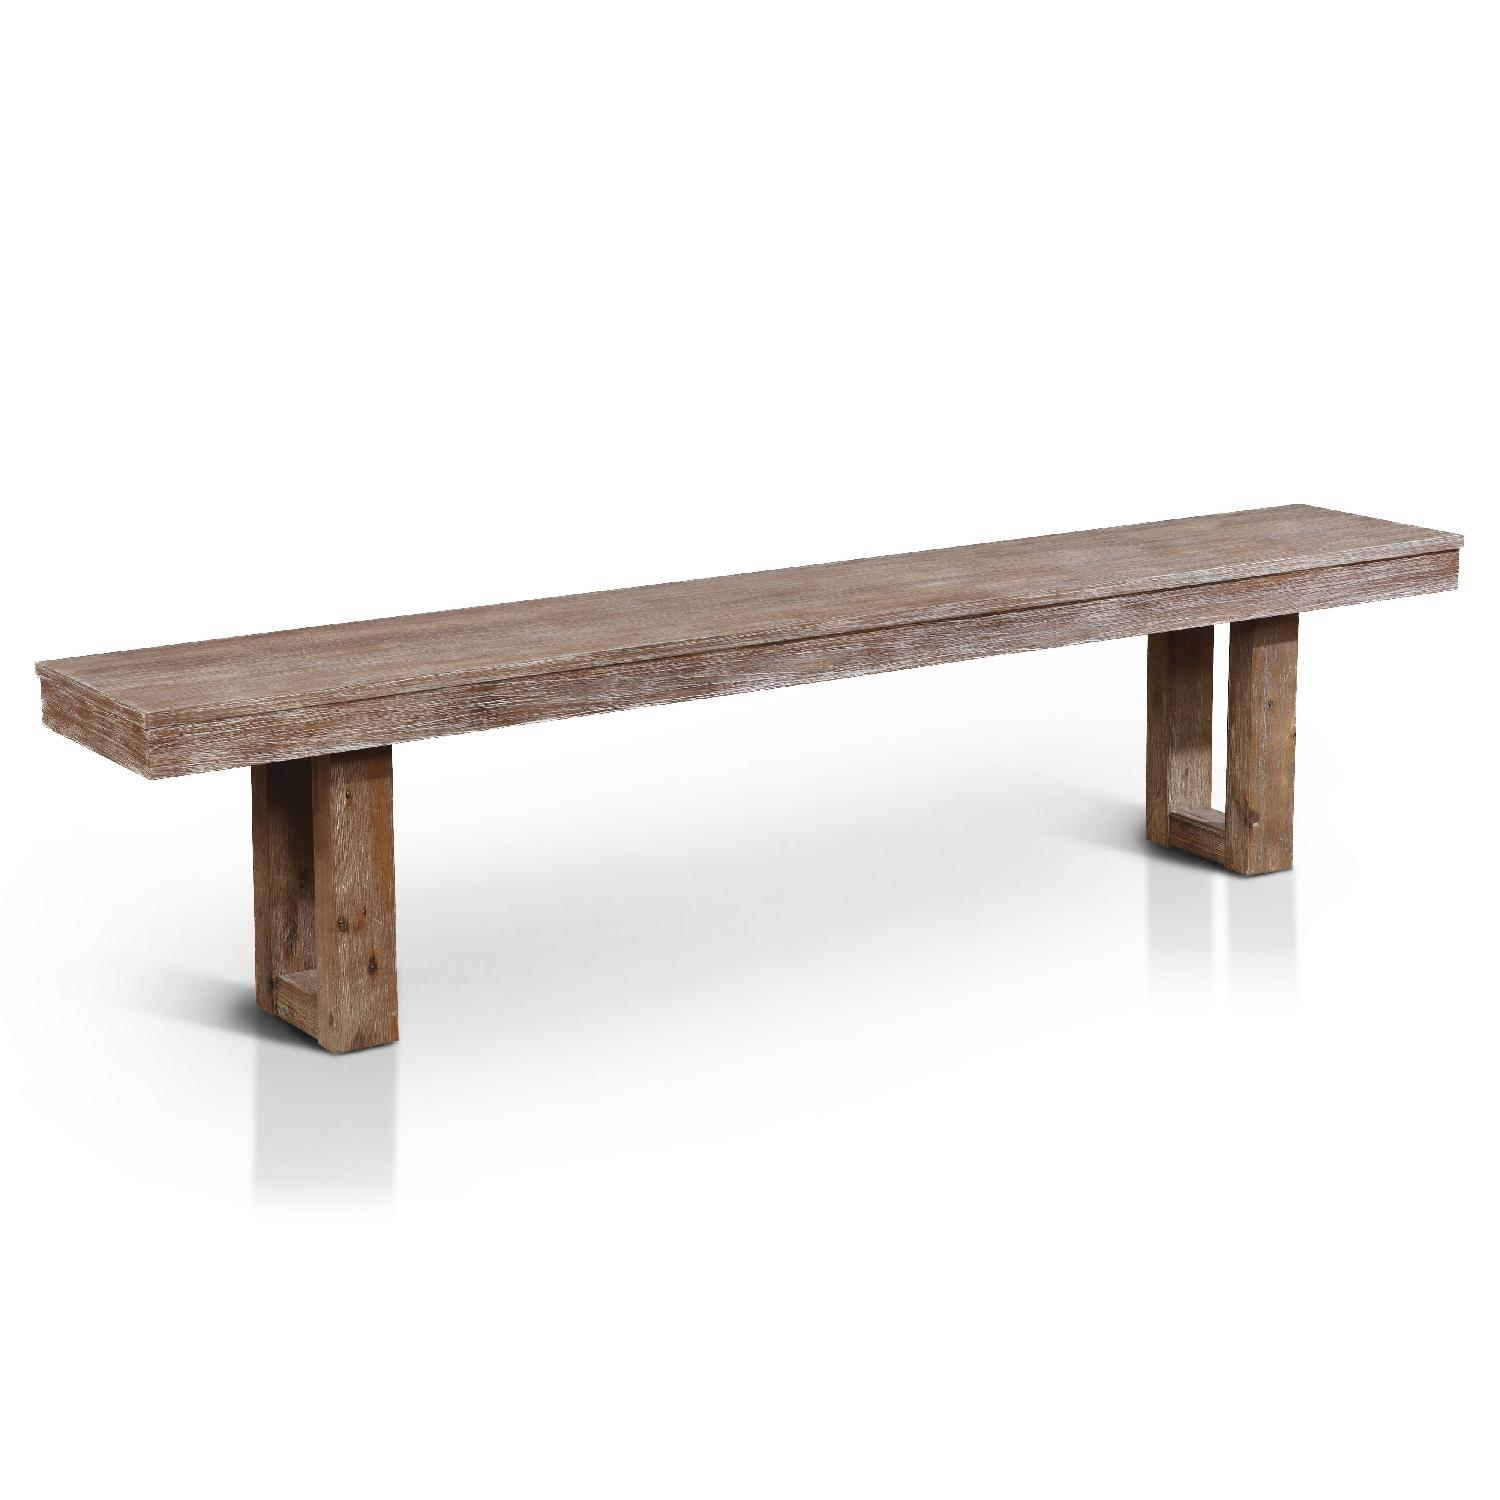 White Hand-Painted Rustic Dining Bench - image-0